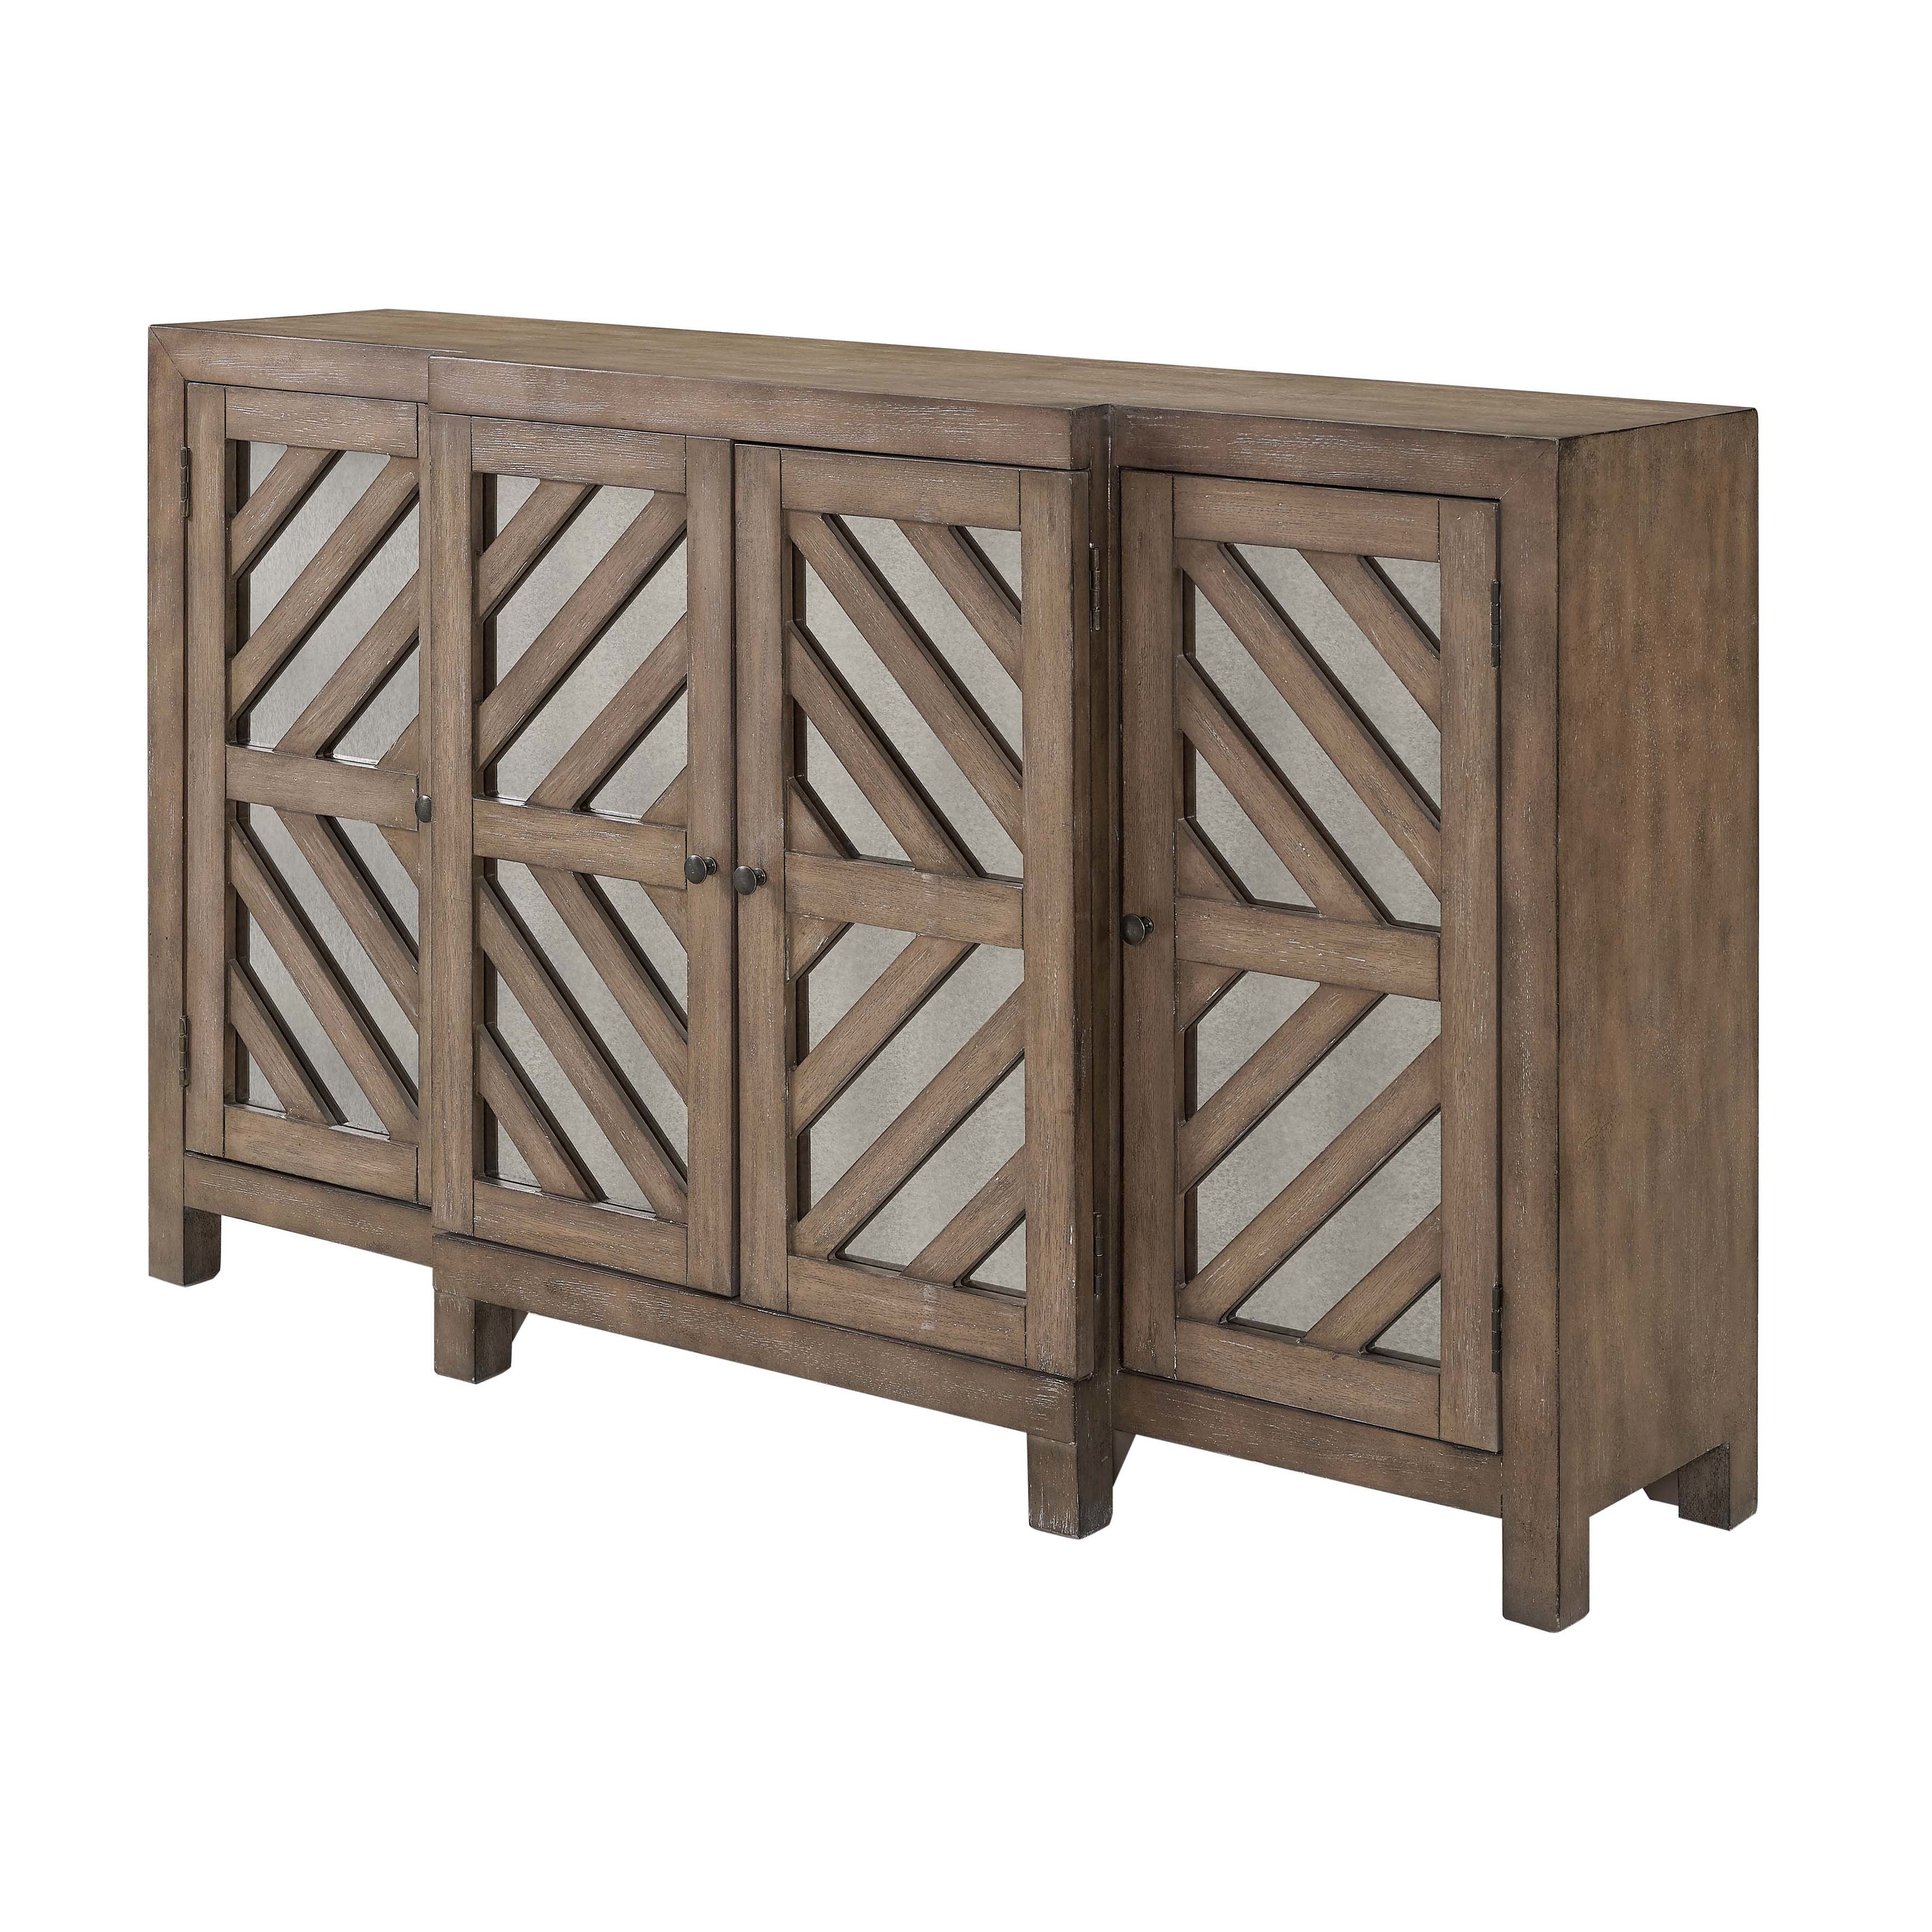 Farmhouse & Rustic Sideboards & Buffets | Birch Lane Pertaining To Contemporary Wooden Buffets With Four Open Compartments And Metal Tapered Legs (View 11 of 20)